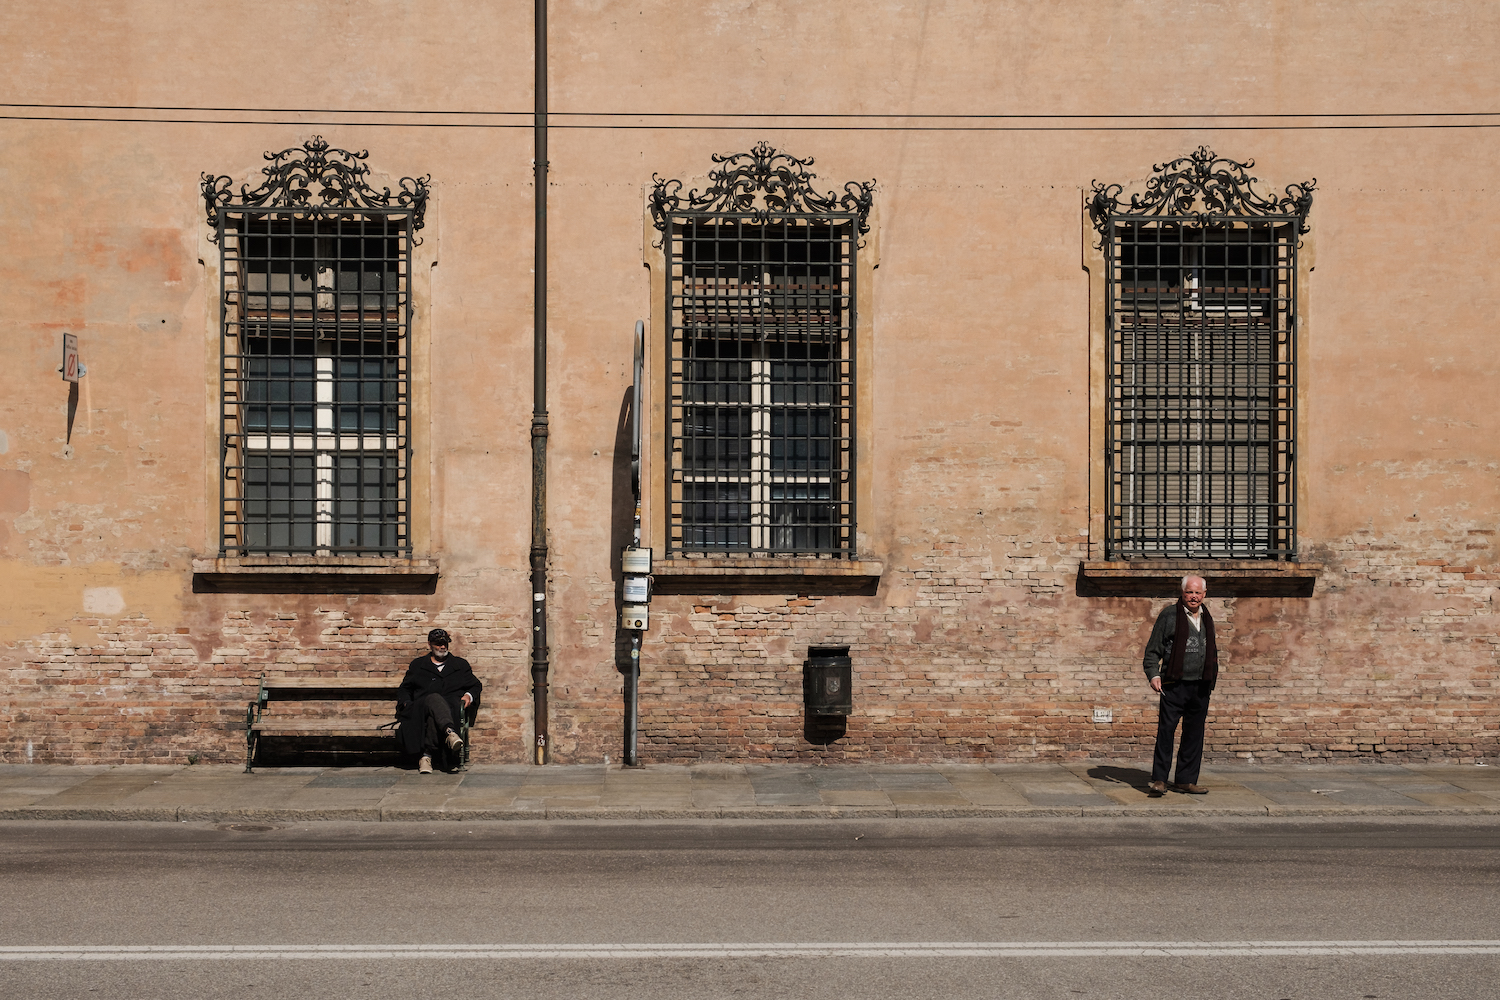 Local people in Modena, Itay Street and Travel Photography by Ben Holbrook from DriftwoodJournals.com-4990